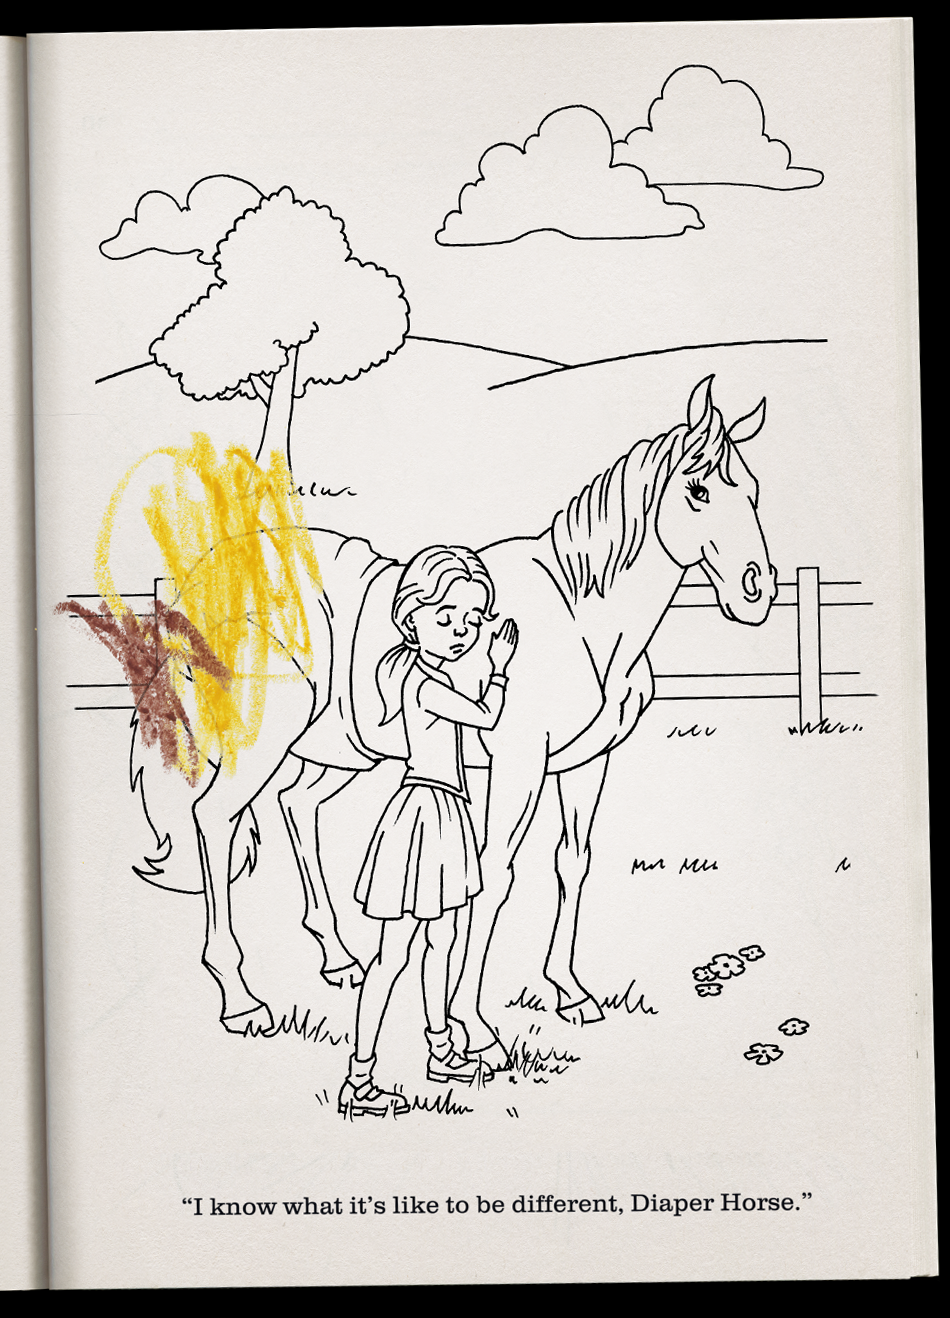 Diaper Horse Coloring Book Interior Page Illustration by Jack ...